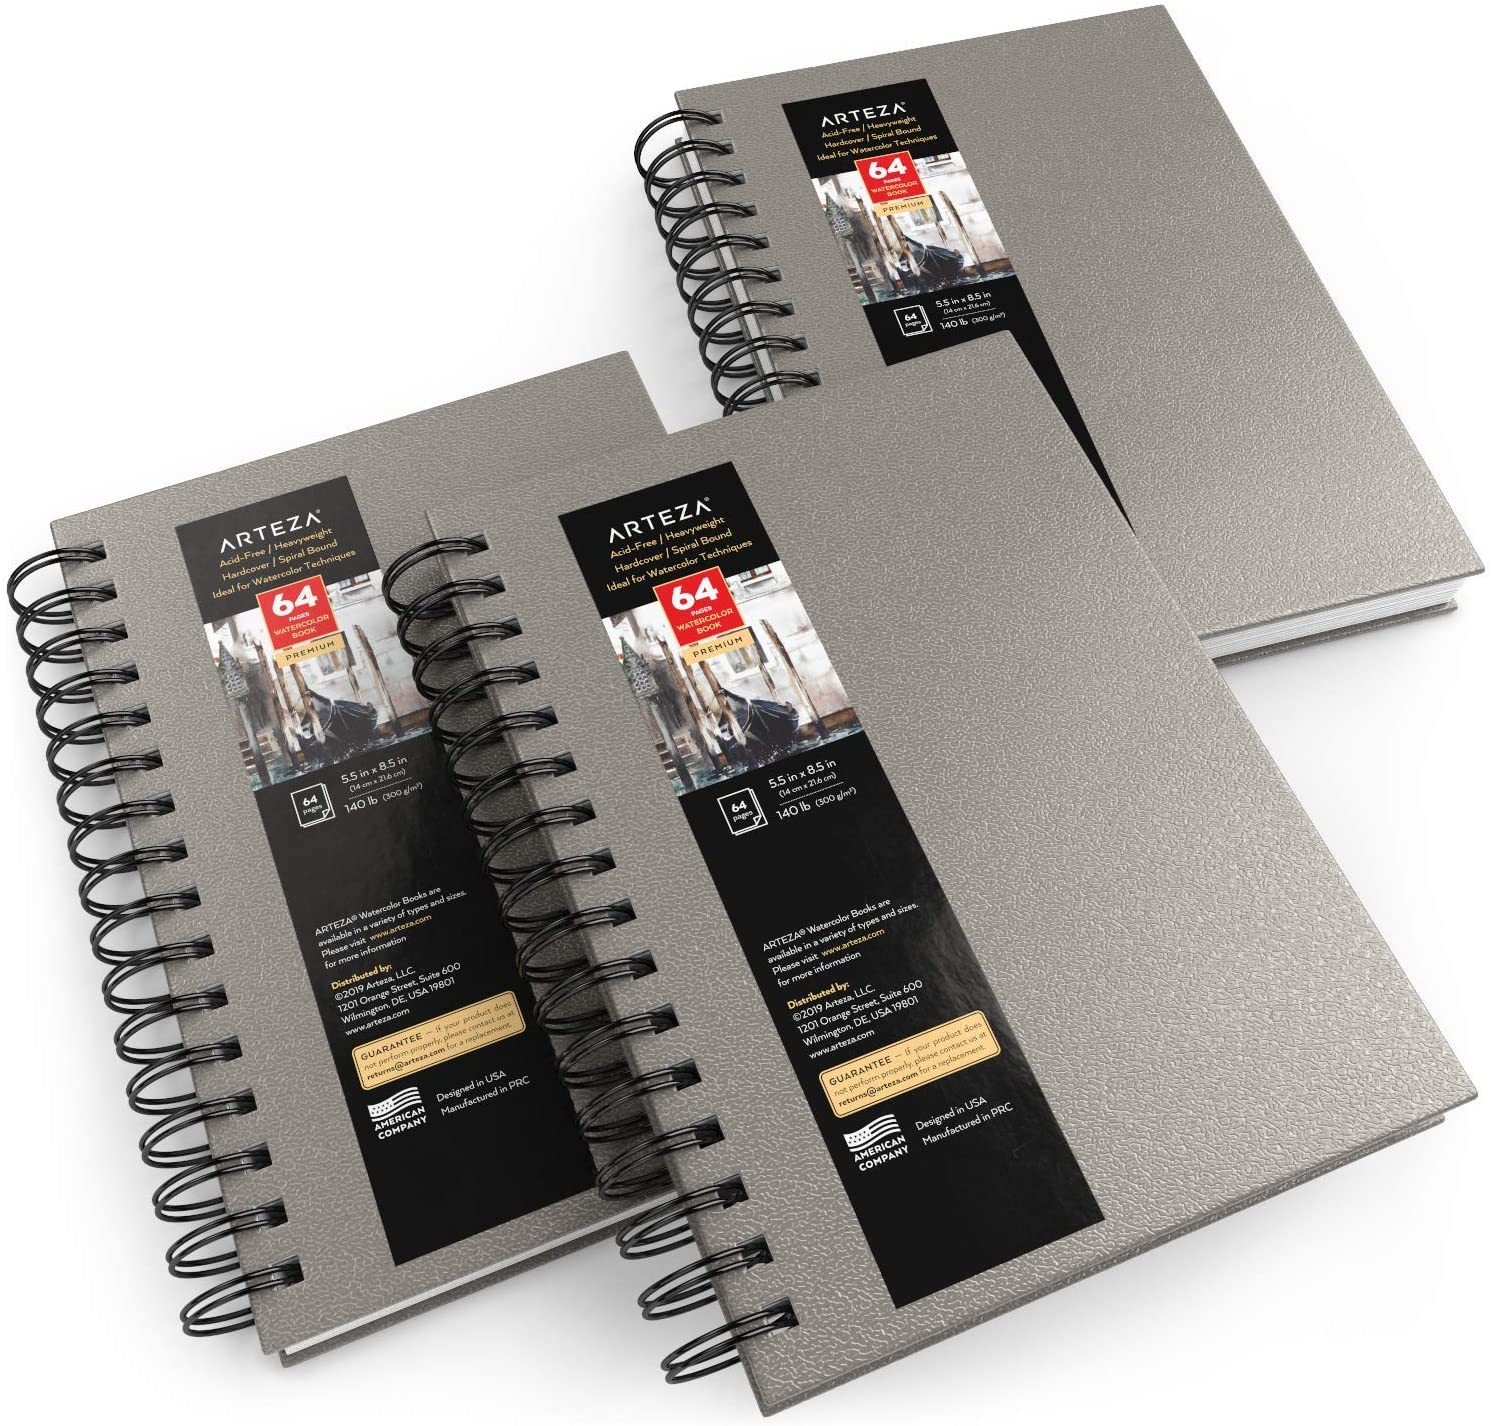 """Watercolor Book, Spiral-Bound Hardcover, Gray, 5.5x8.5"""" - Pack of 3"""